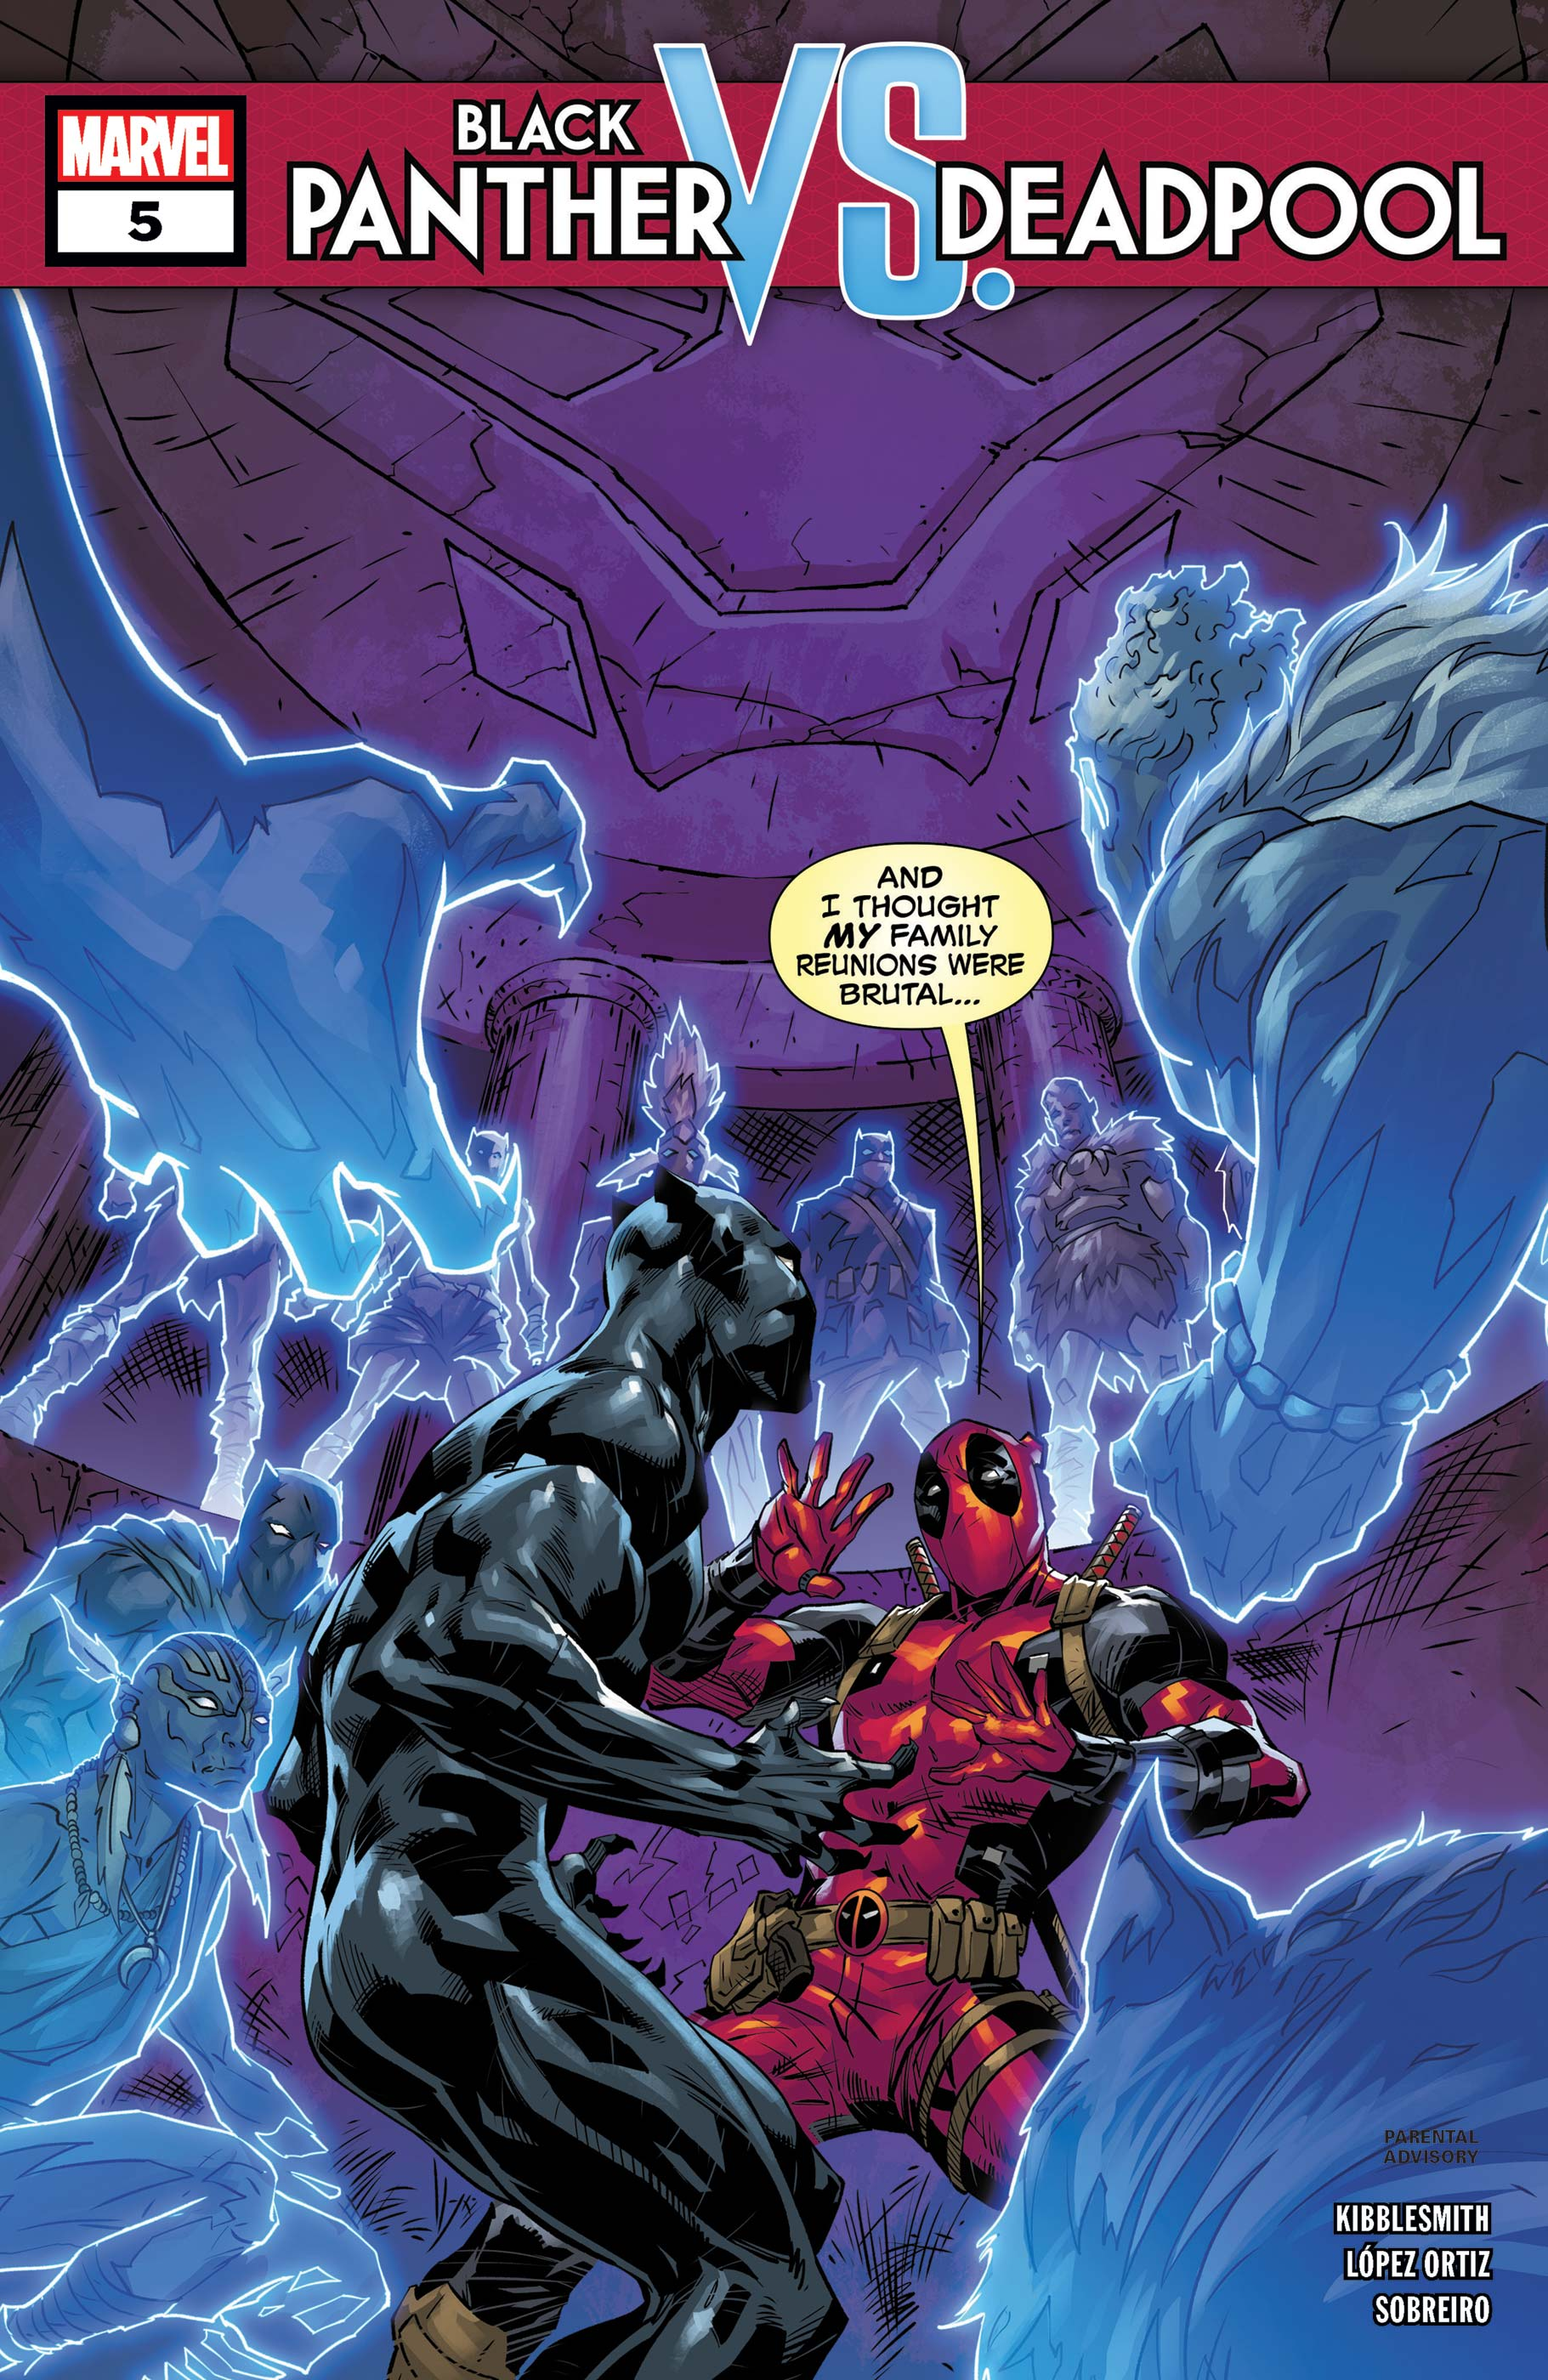 Black Panther Vs. Deadpool (2018) #5